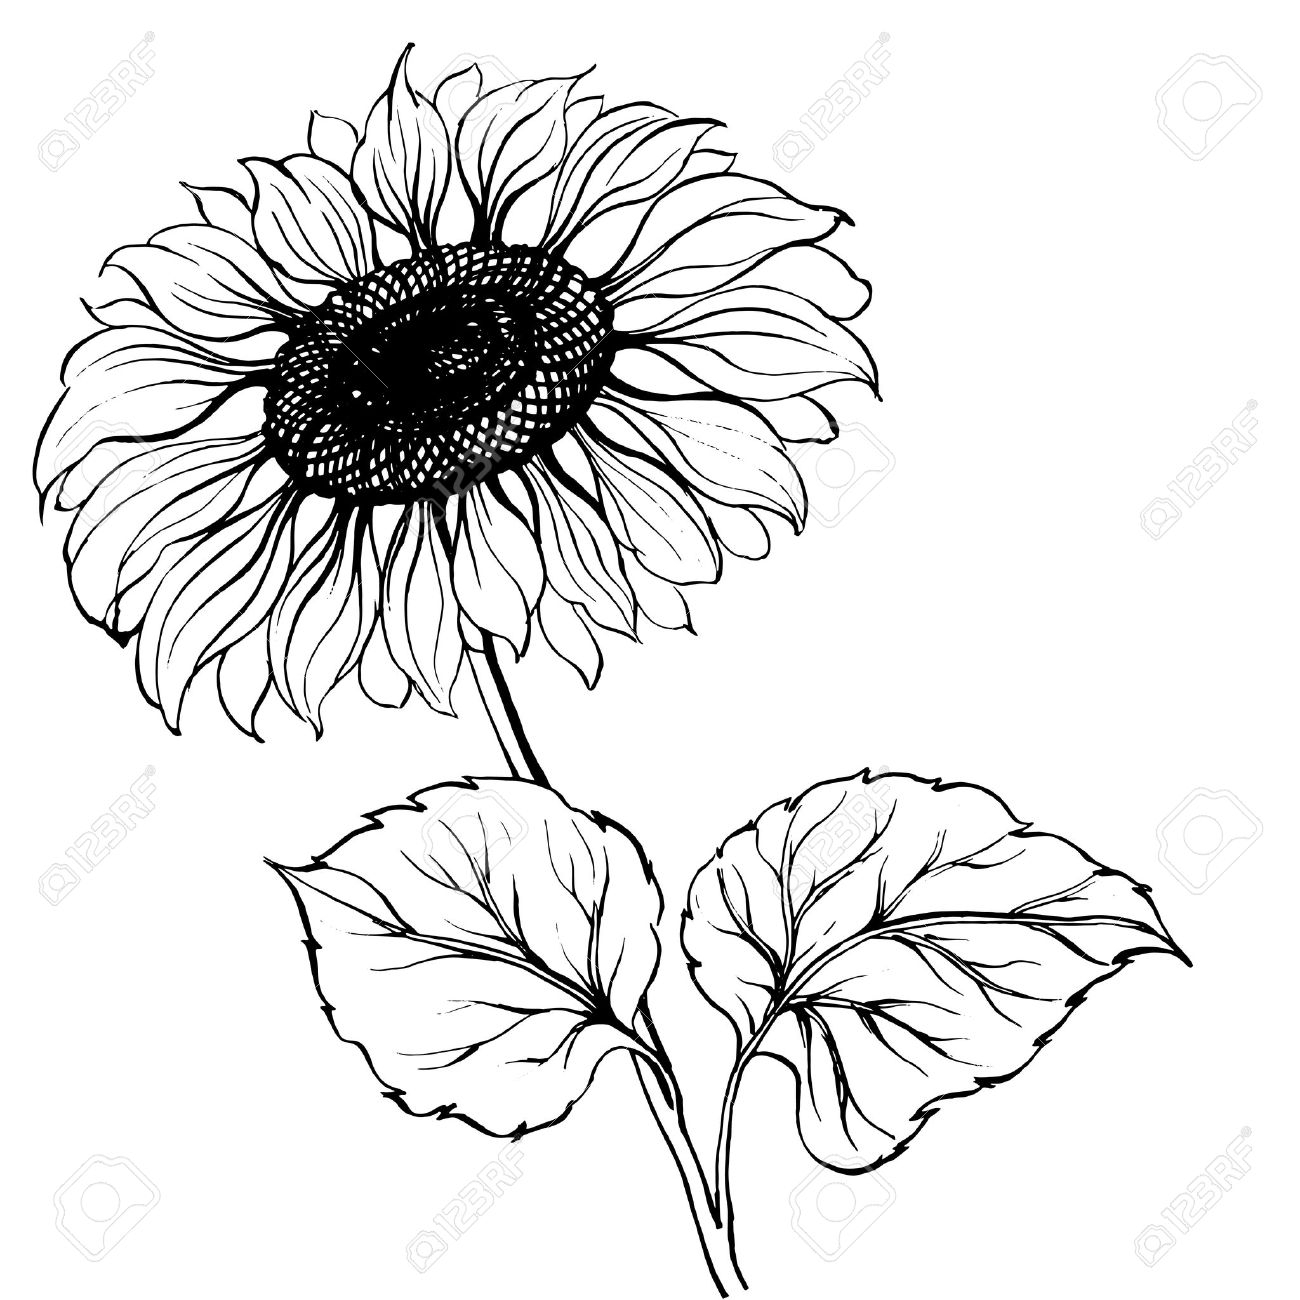 1300x1300 Black And White Sunflower Drawing The Best Sunflower Drawing